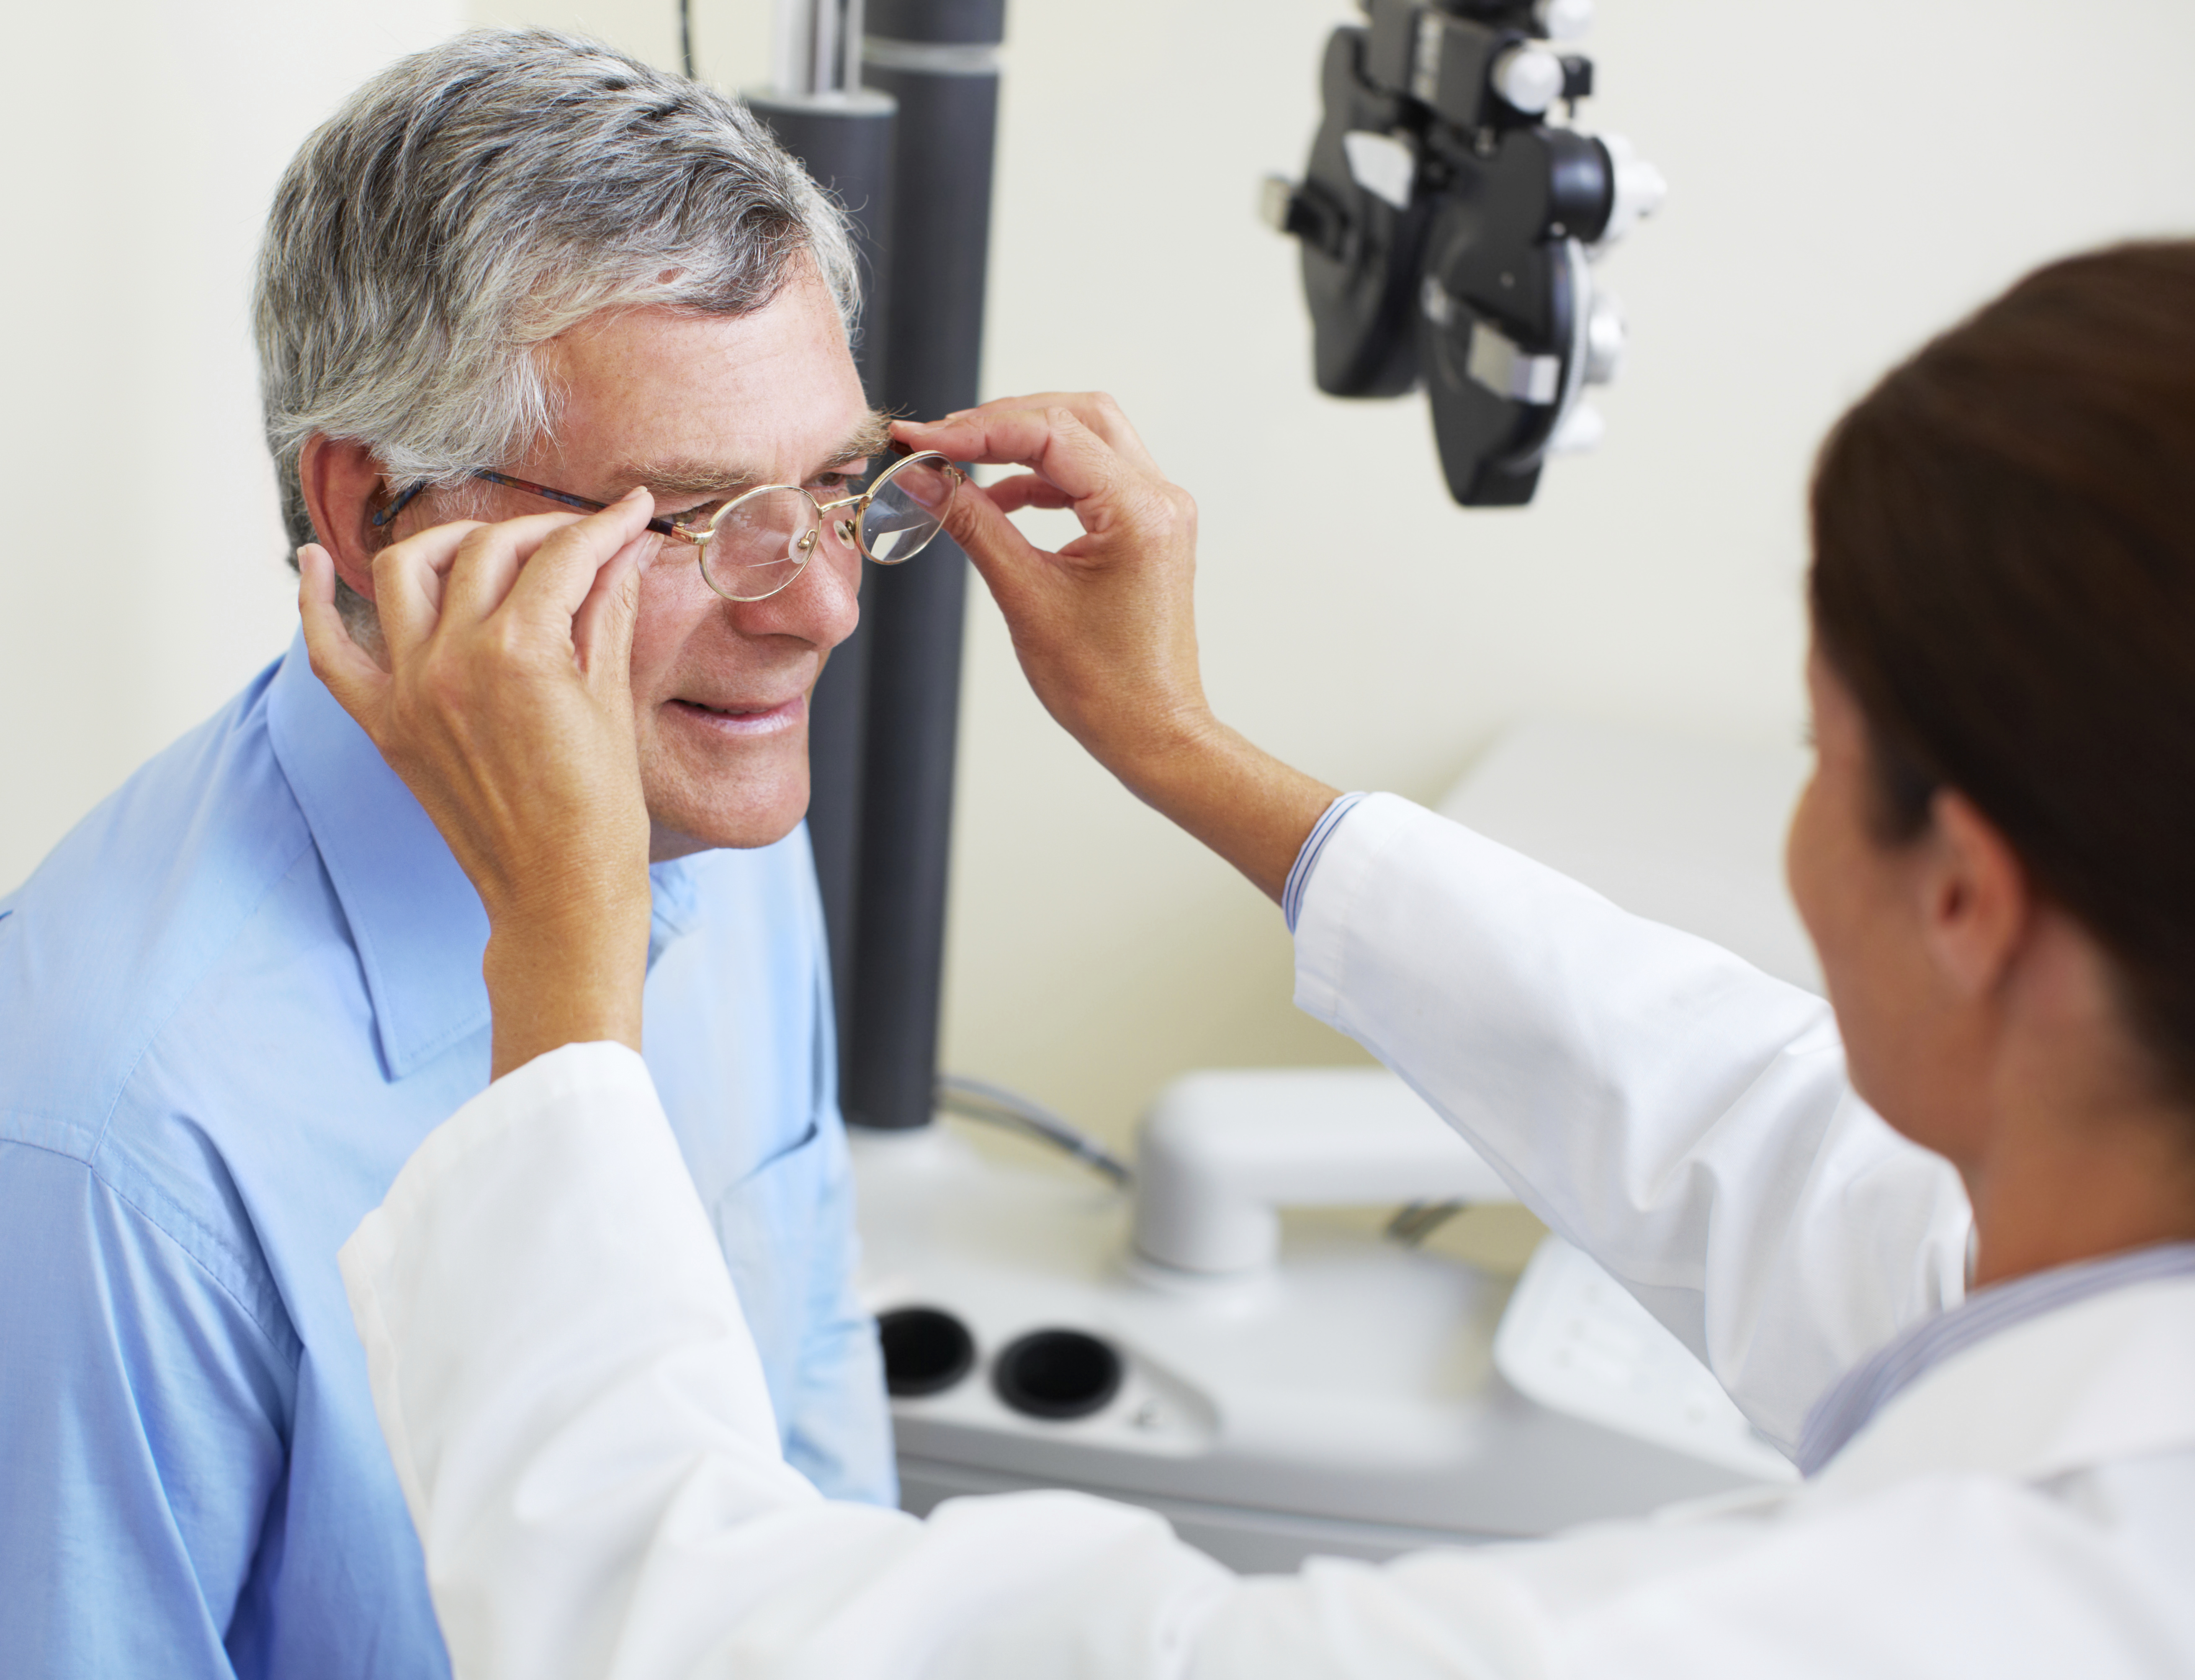 Ophthalmic Assisting Makes A Difference In Peoples Lives And Has High Job Satisfaction